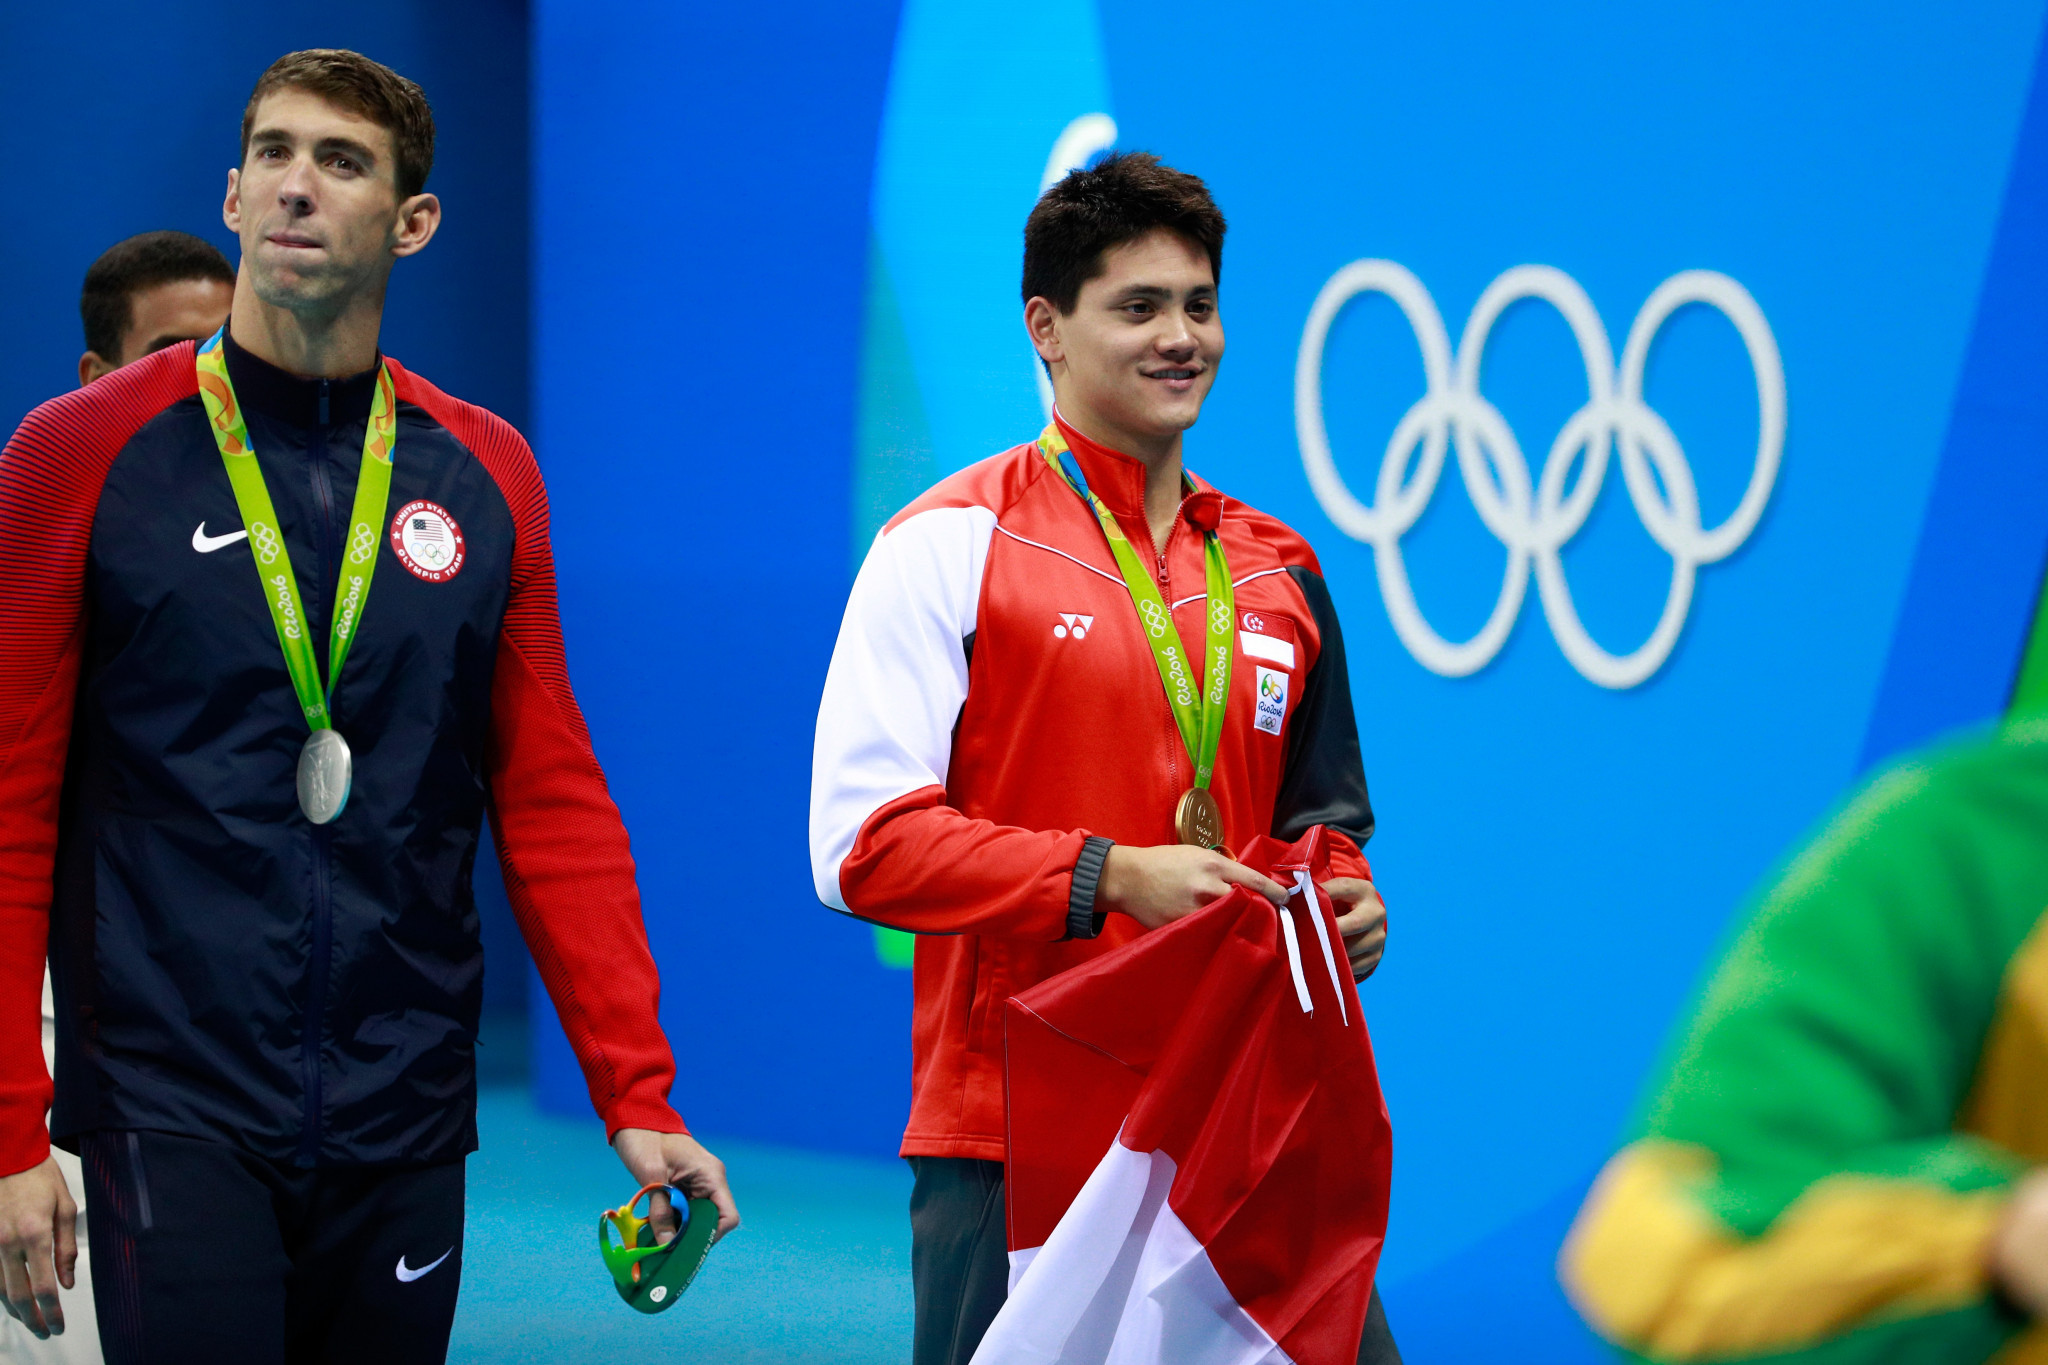 Joseph Schooling stunned Michael Phelps to win gold at Rio 2016 and become a national hero in Singapore ©Getty Images